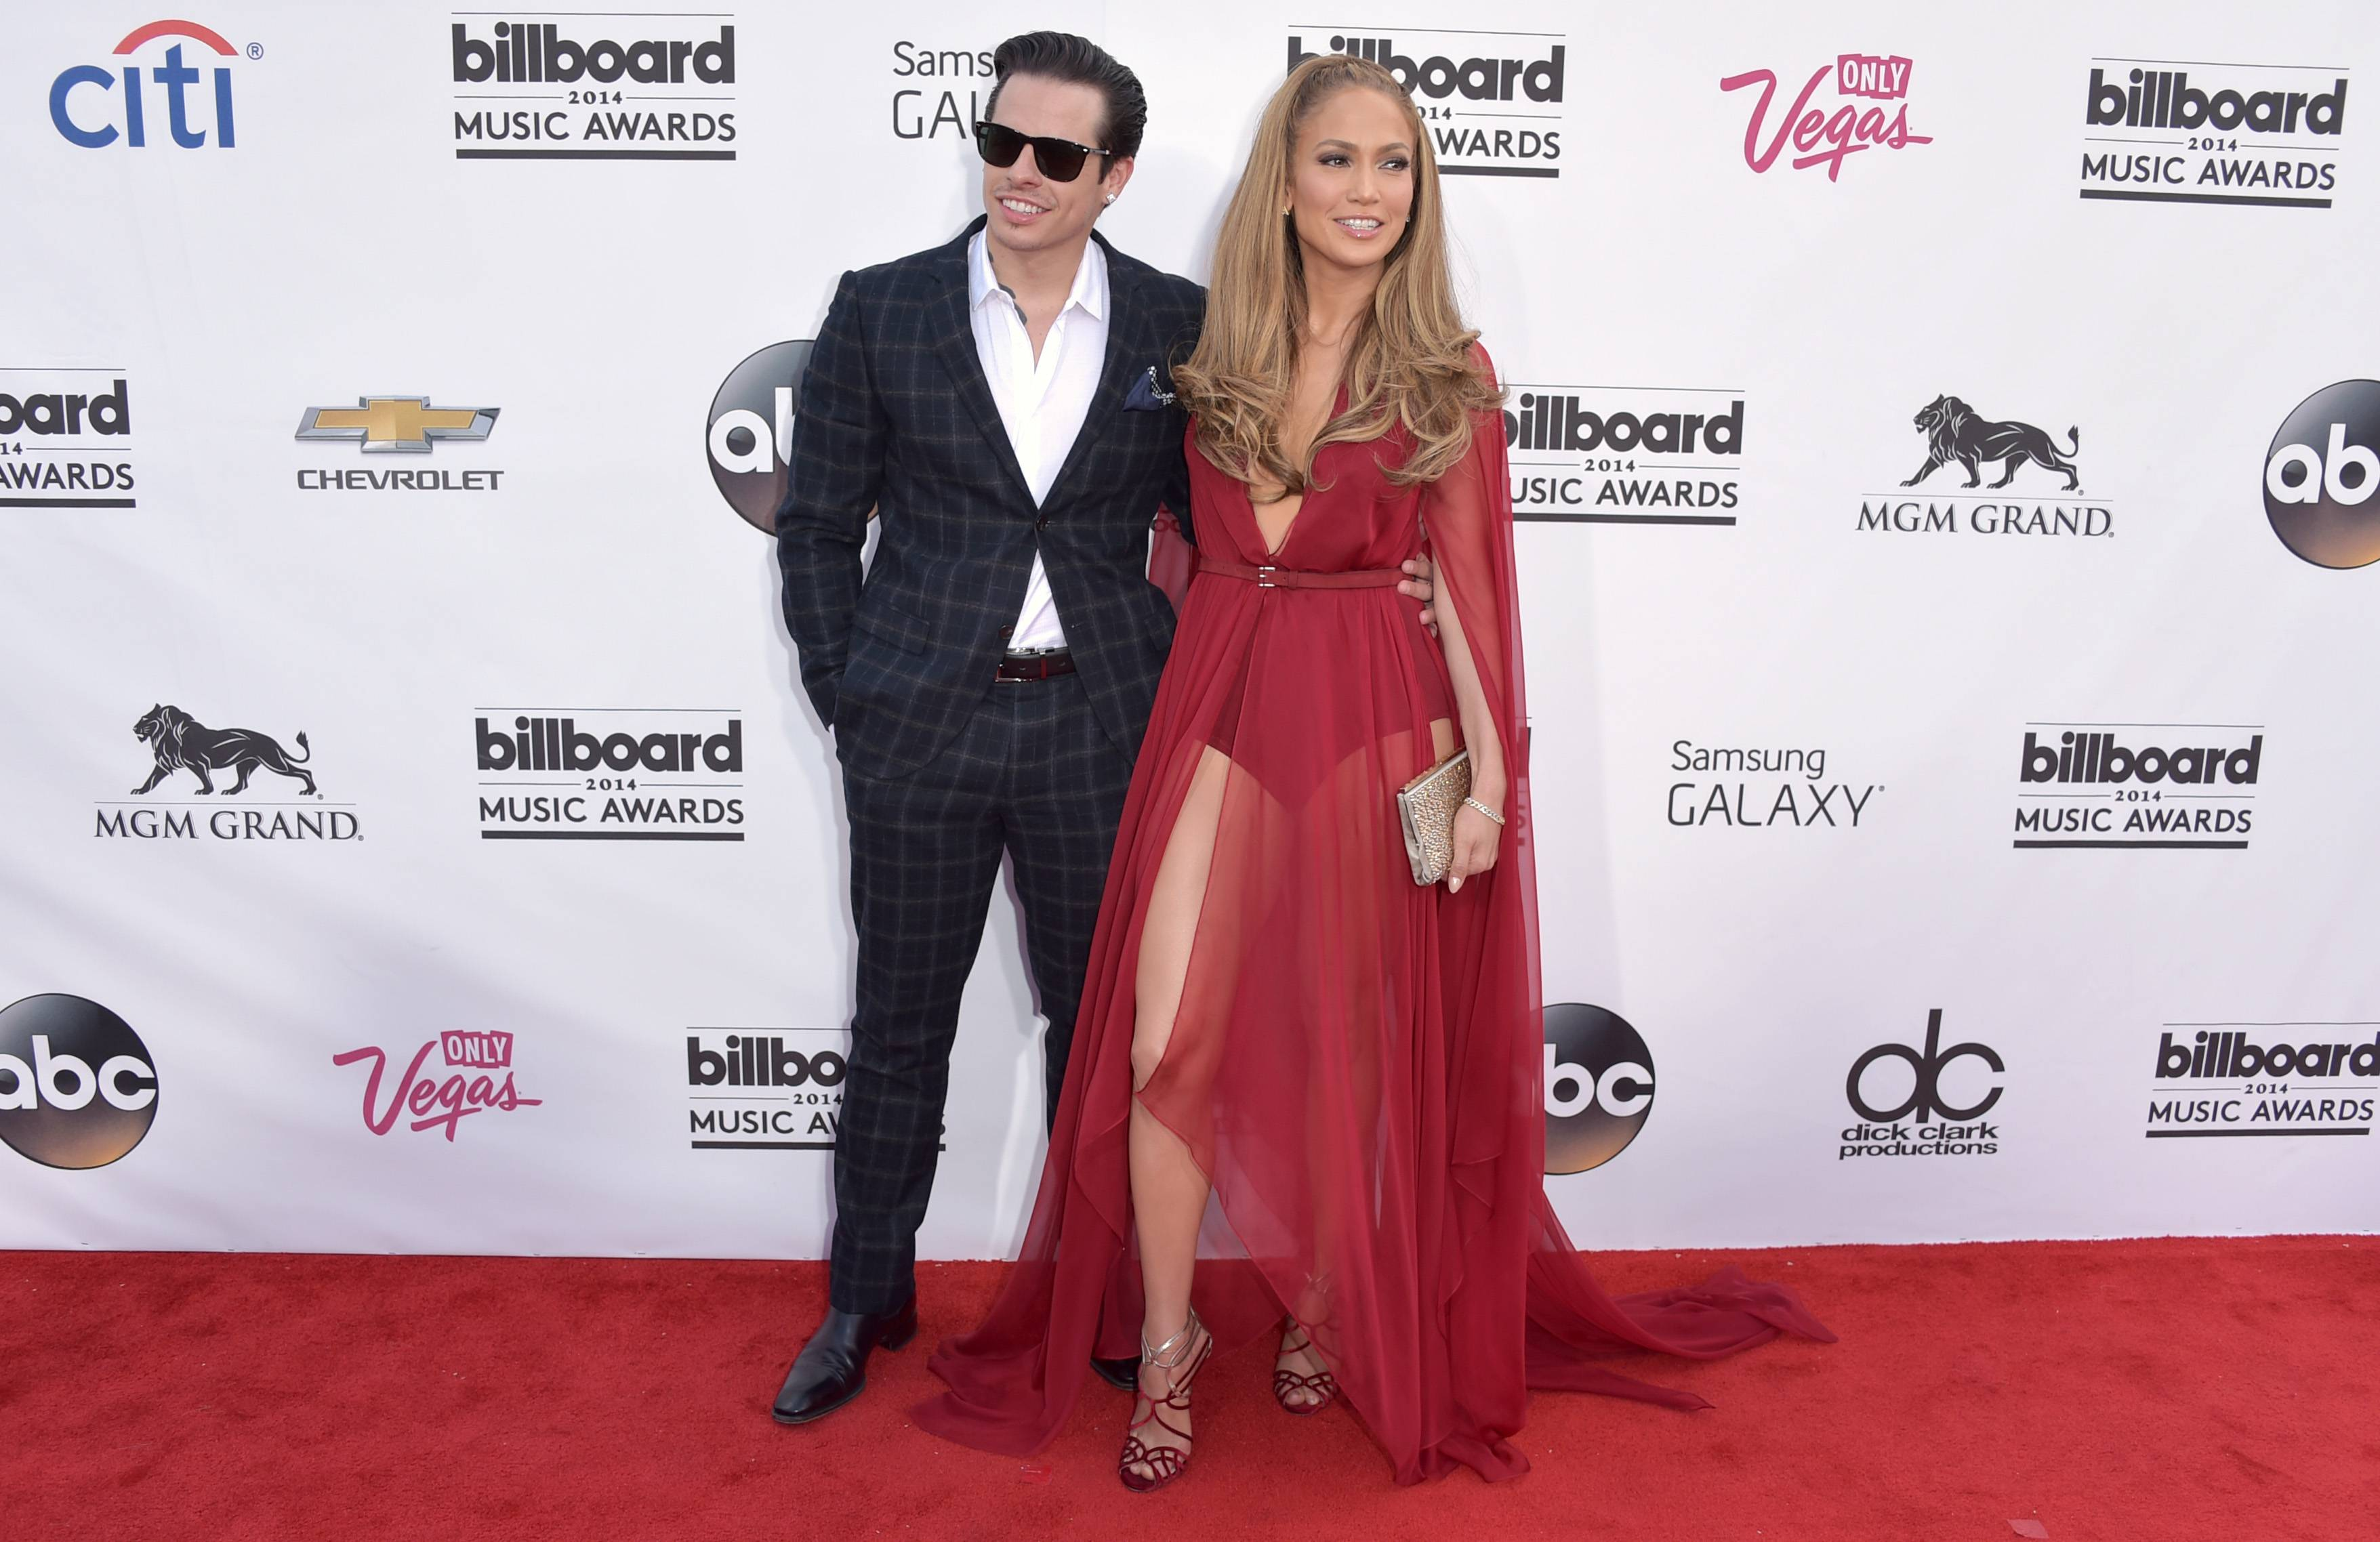 Casper Smart, left, and Jennifer Lopez arrive at the Billboard Music Awards at the MGM Grand Garden Arena on Sunday, May 18, 2014, in Las Vegas.